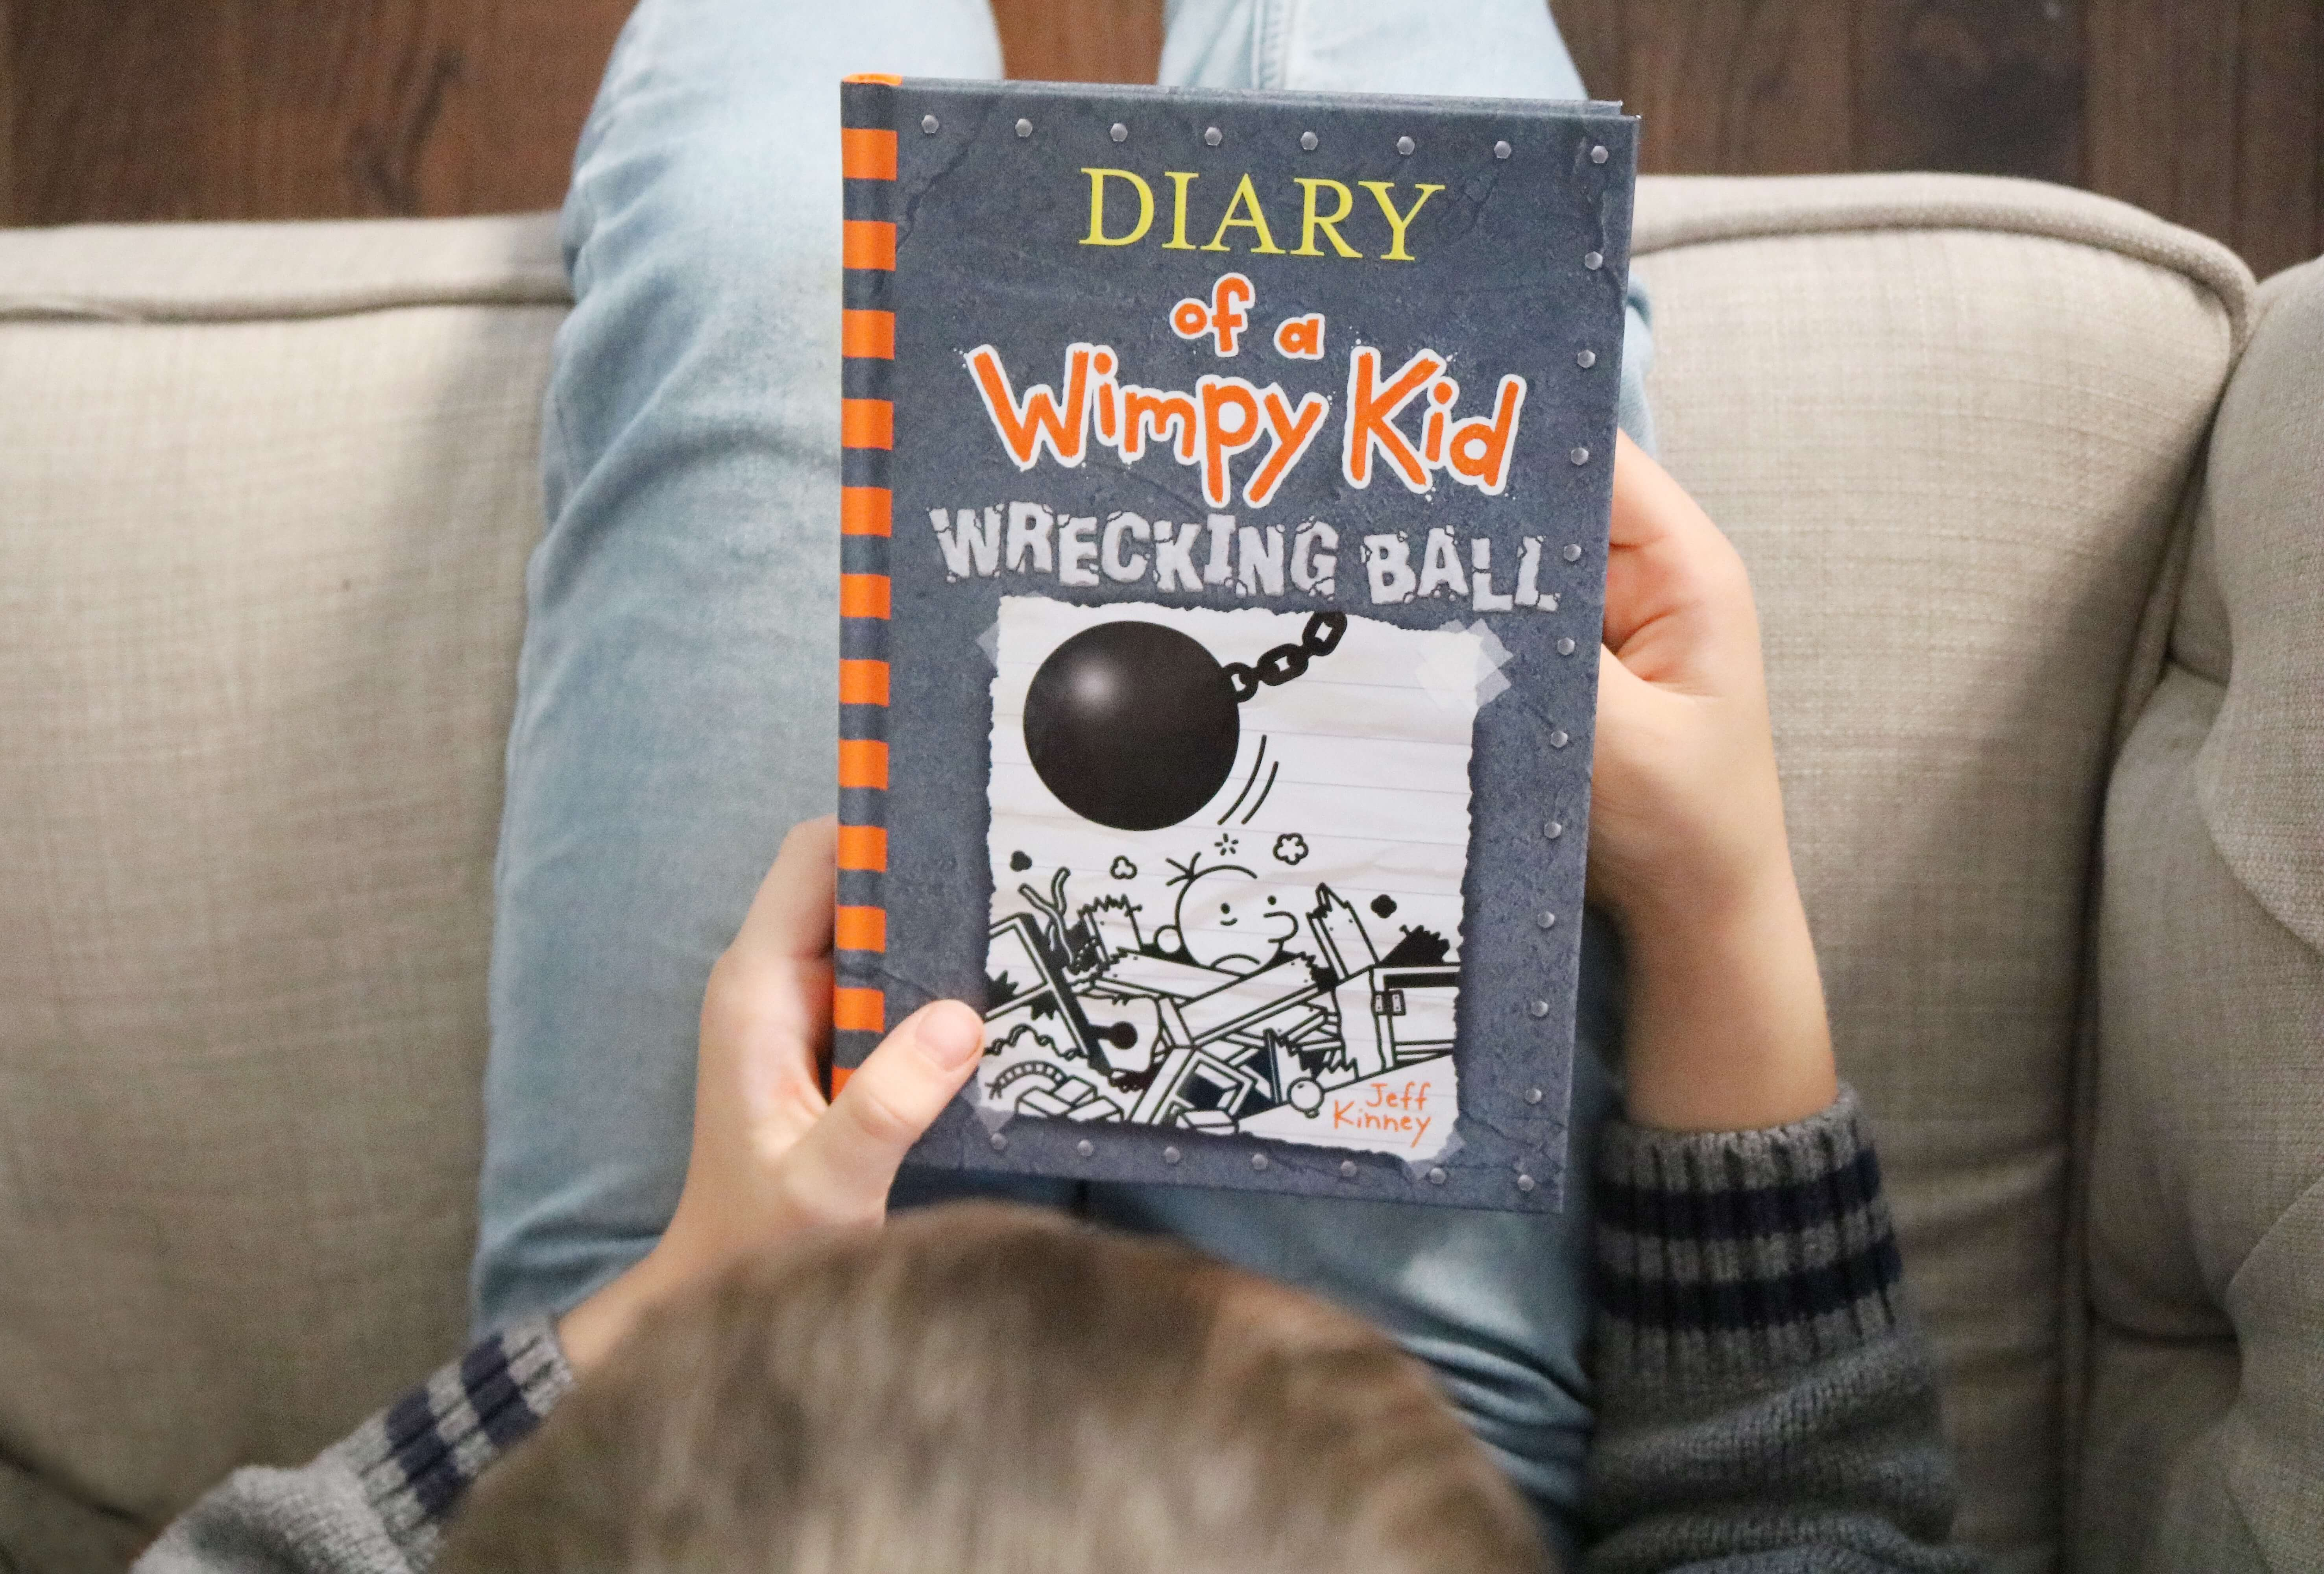 Diary of a Wimpy Kid Wrecking Ball Review